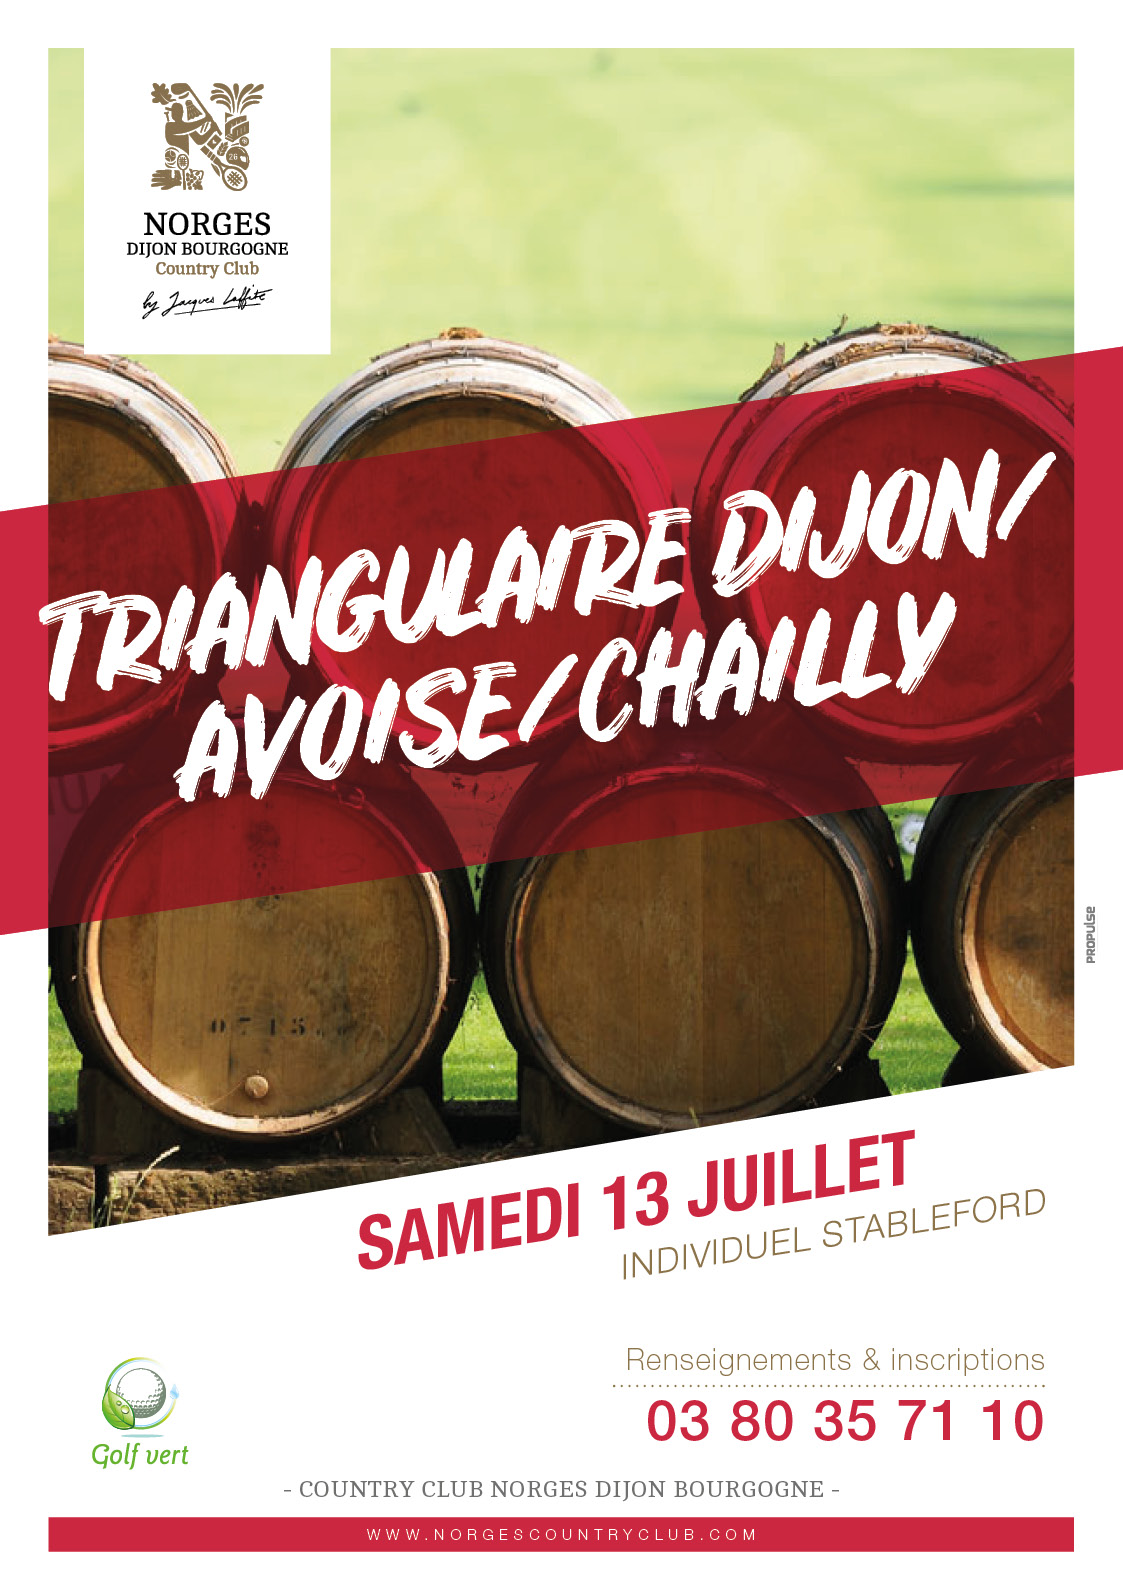 Triangulaire Dijon/Avoise/Chailly